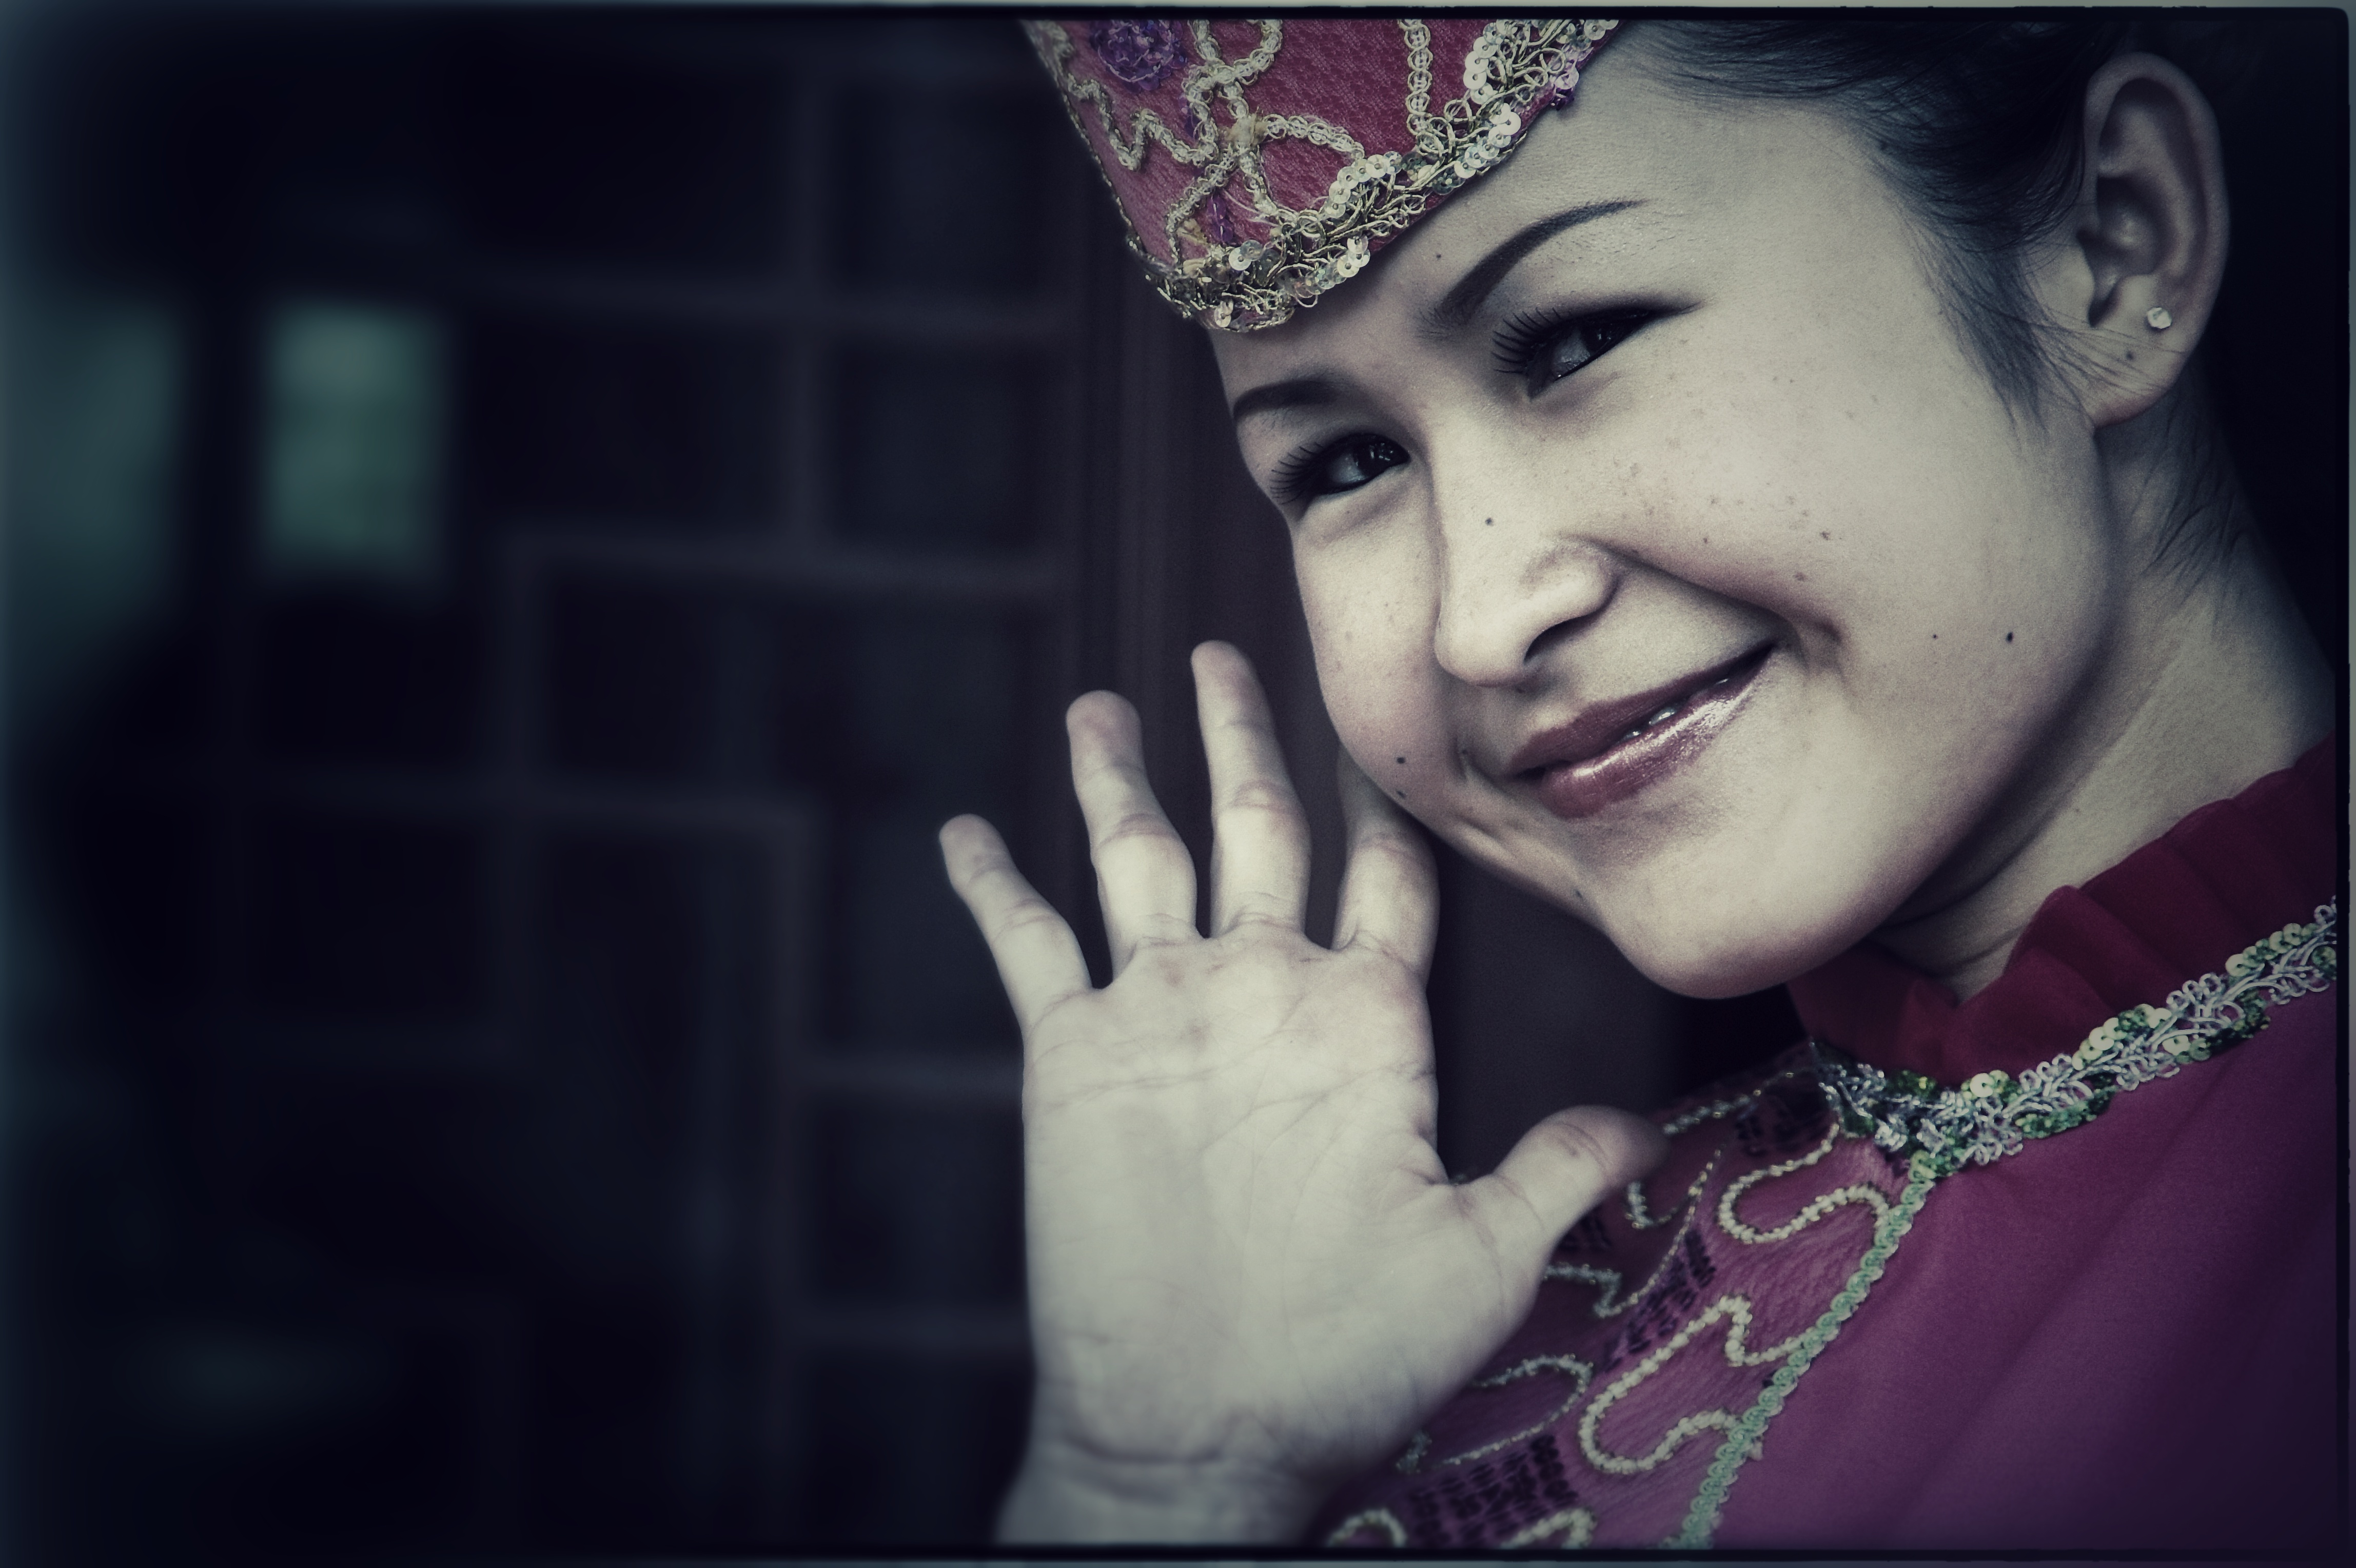 Chinese Portraits : Hui Dancer - Portraits from diverse ethnic origins like Uyghur, Han, Kazak, Hui, Xibo and Mongol in China.